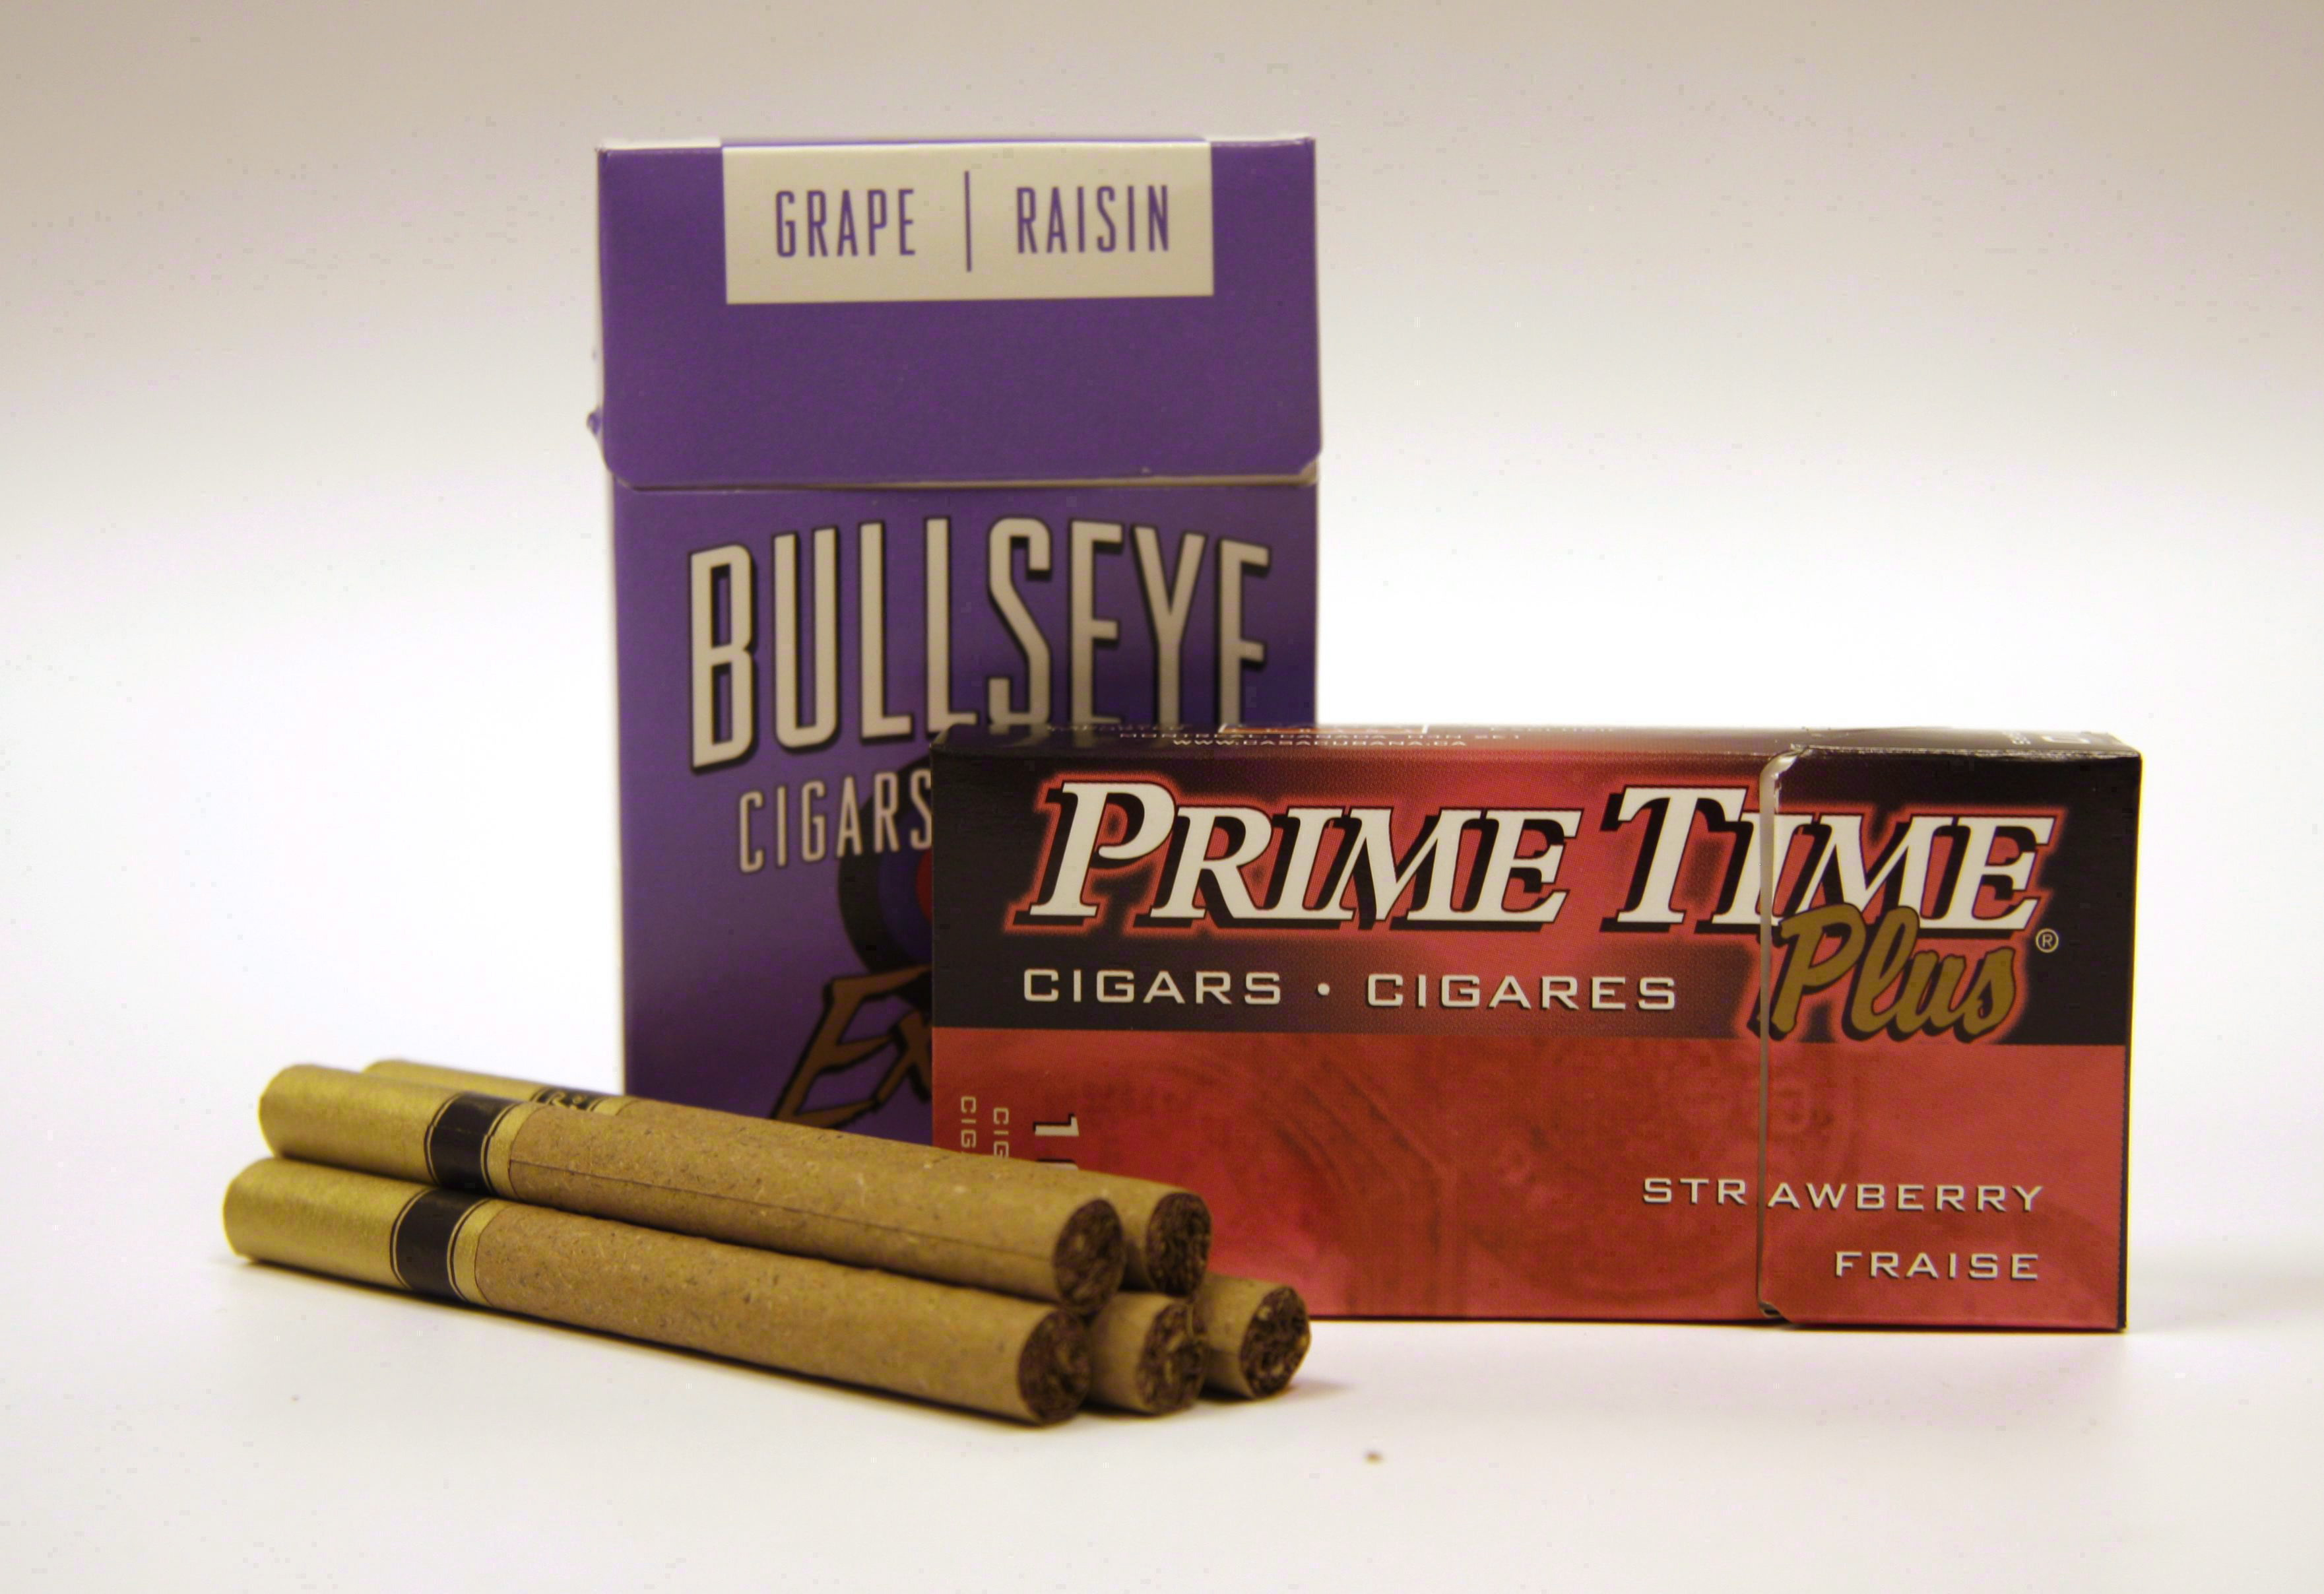 Packages of flavoured cigars are shown in an Oct. 3, 2010 photo. THE CANADIAN PRESS/Doug Ives.